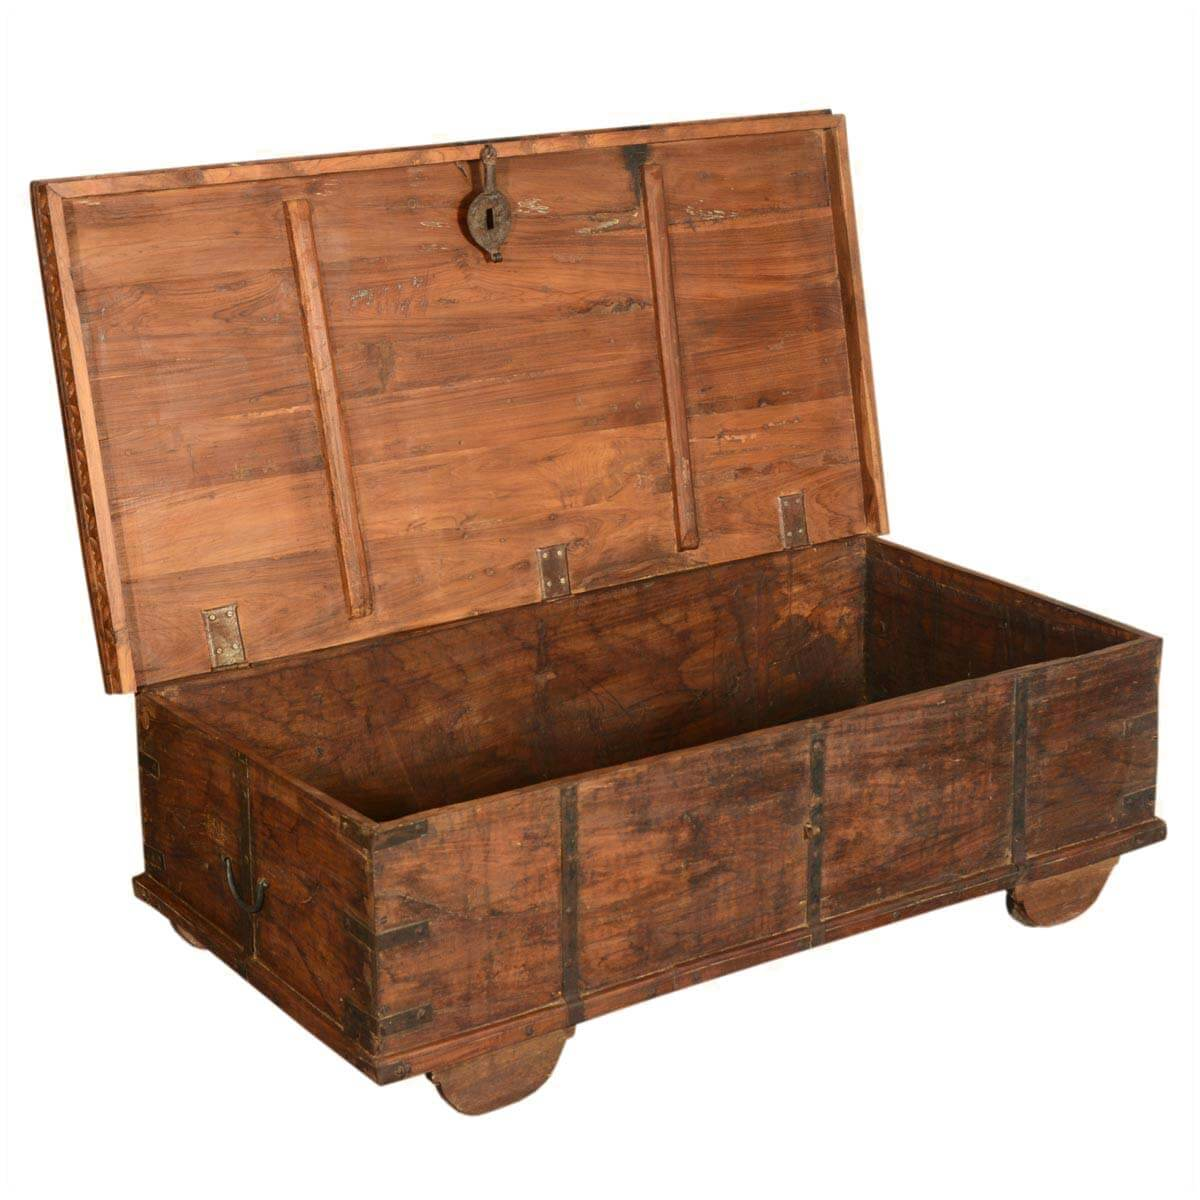 Langley reclaimed wood rustic metal accent storage trunk coffee table Metal chest coffee table